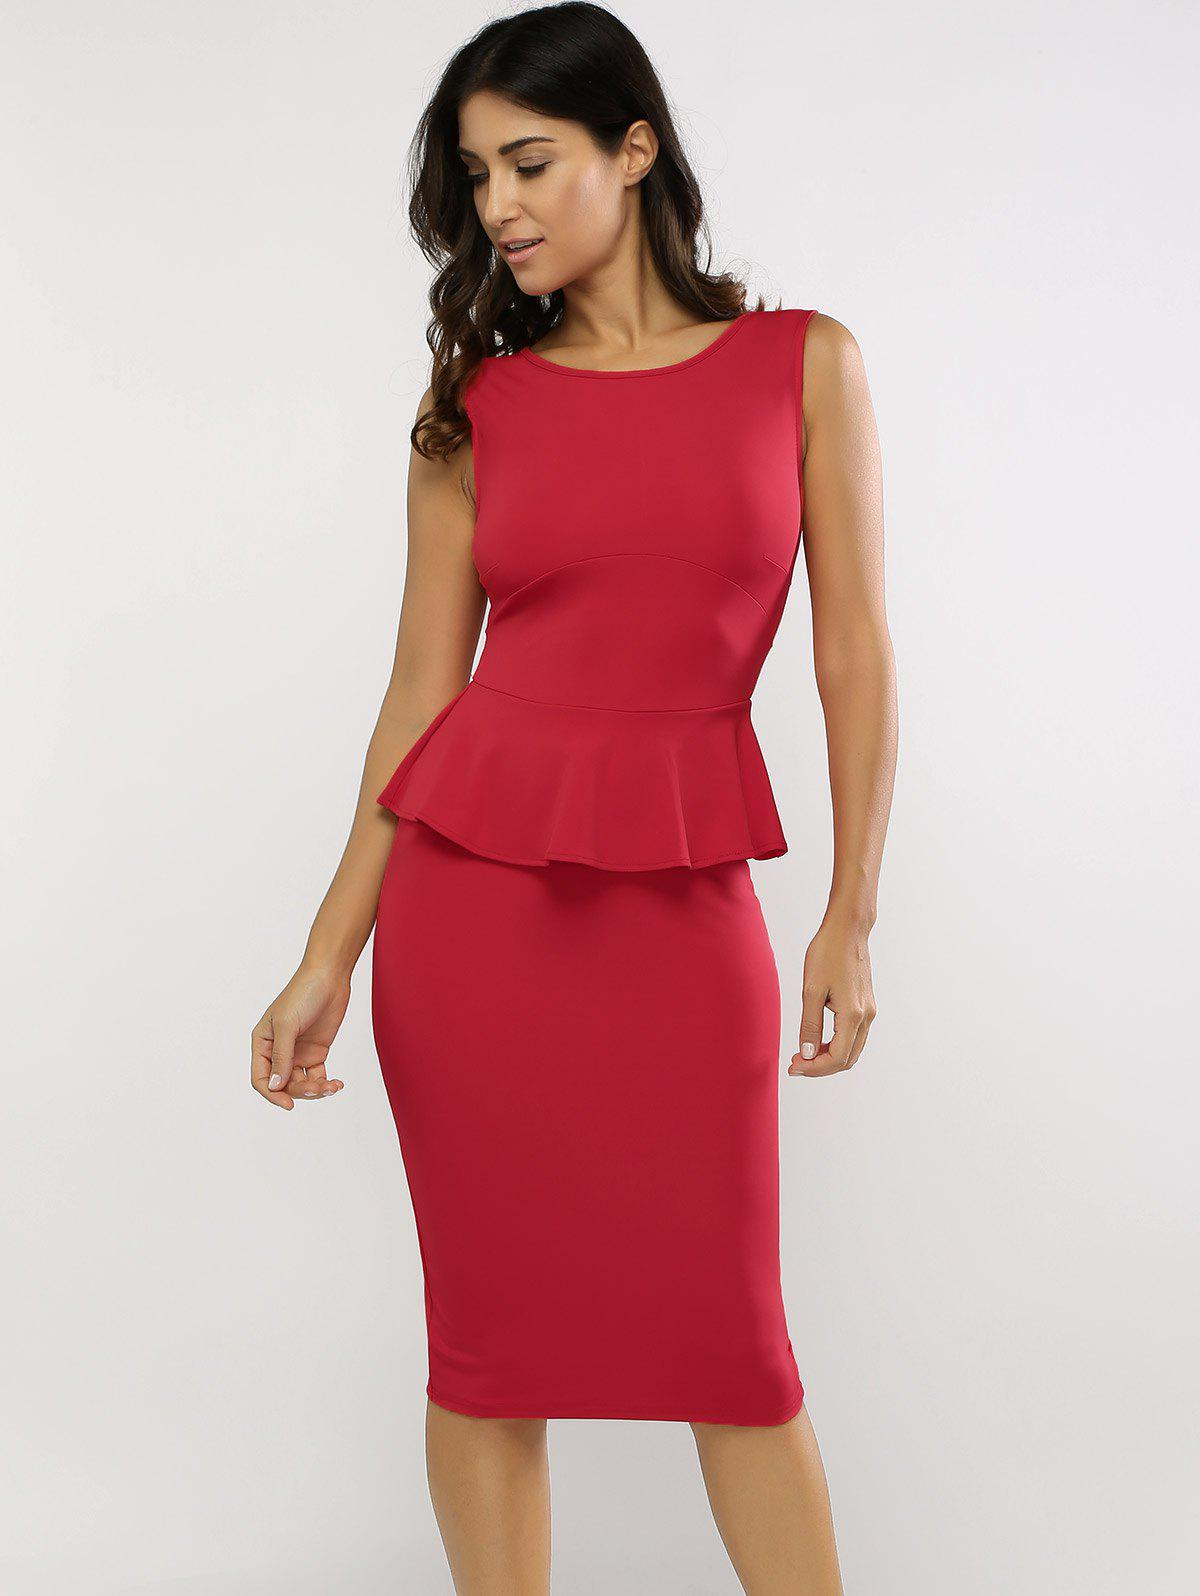 downiloadojg.gq: peplum xl. From The Community. Fashion Tie Neck Peplum High Waist Business Dress for Ladies Peplum Speechless Girls' Big Peplum Top with Purse, by Speechless. $ - $ $ 10 $ 22 99 Prime. FREE Shipping on eligible orders. Some sizes/colors are Prime eligible.